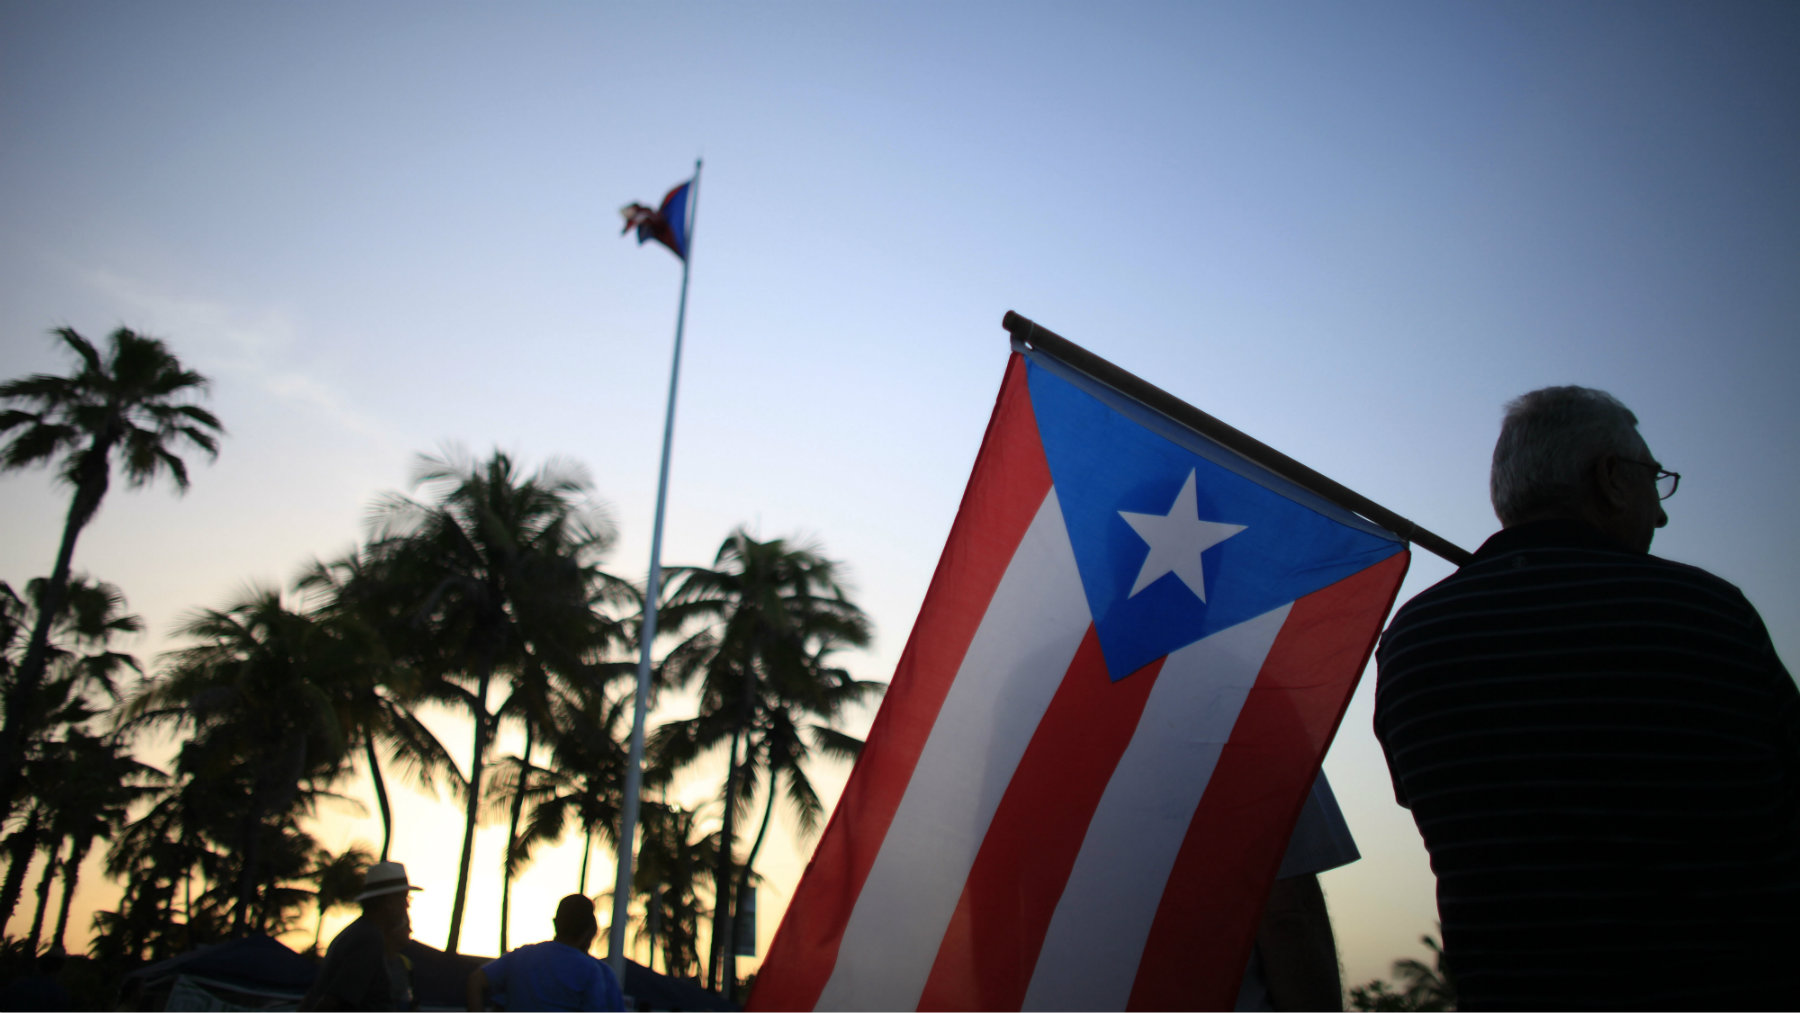 People gather in front of the Puerto Rico's Capitol building to protest against Gov. Alejandro Garcia Padilla's budget proposal for the next fiscal year in San Juan, Thursday, April 30, 2015. Legislators struck down a key part of a plan to overhaul the island's tax system early Thursday, raising concerns about the U.S. territory's economic future and its ability to pay off a heavy public debt. (AP Photo/Ricardo Arduengo)